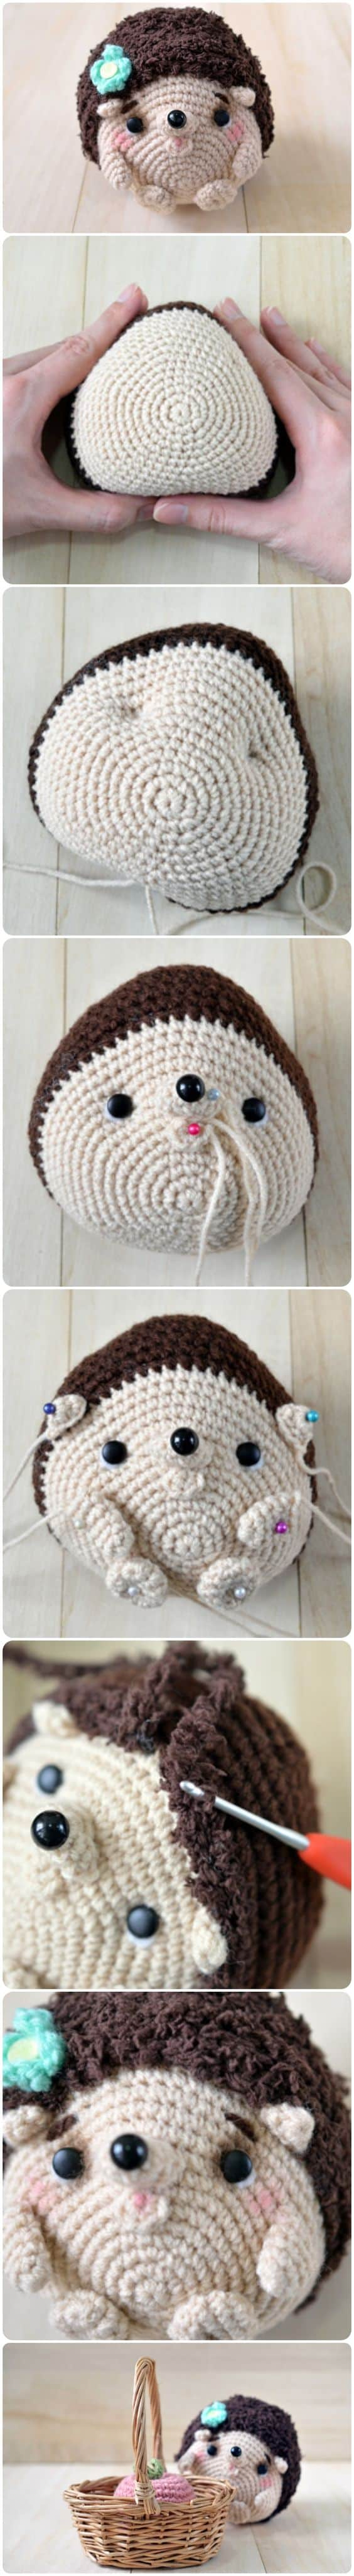 Crochet Hedgehog Free Pattern